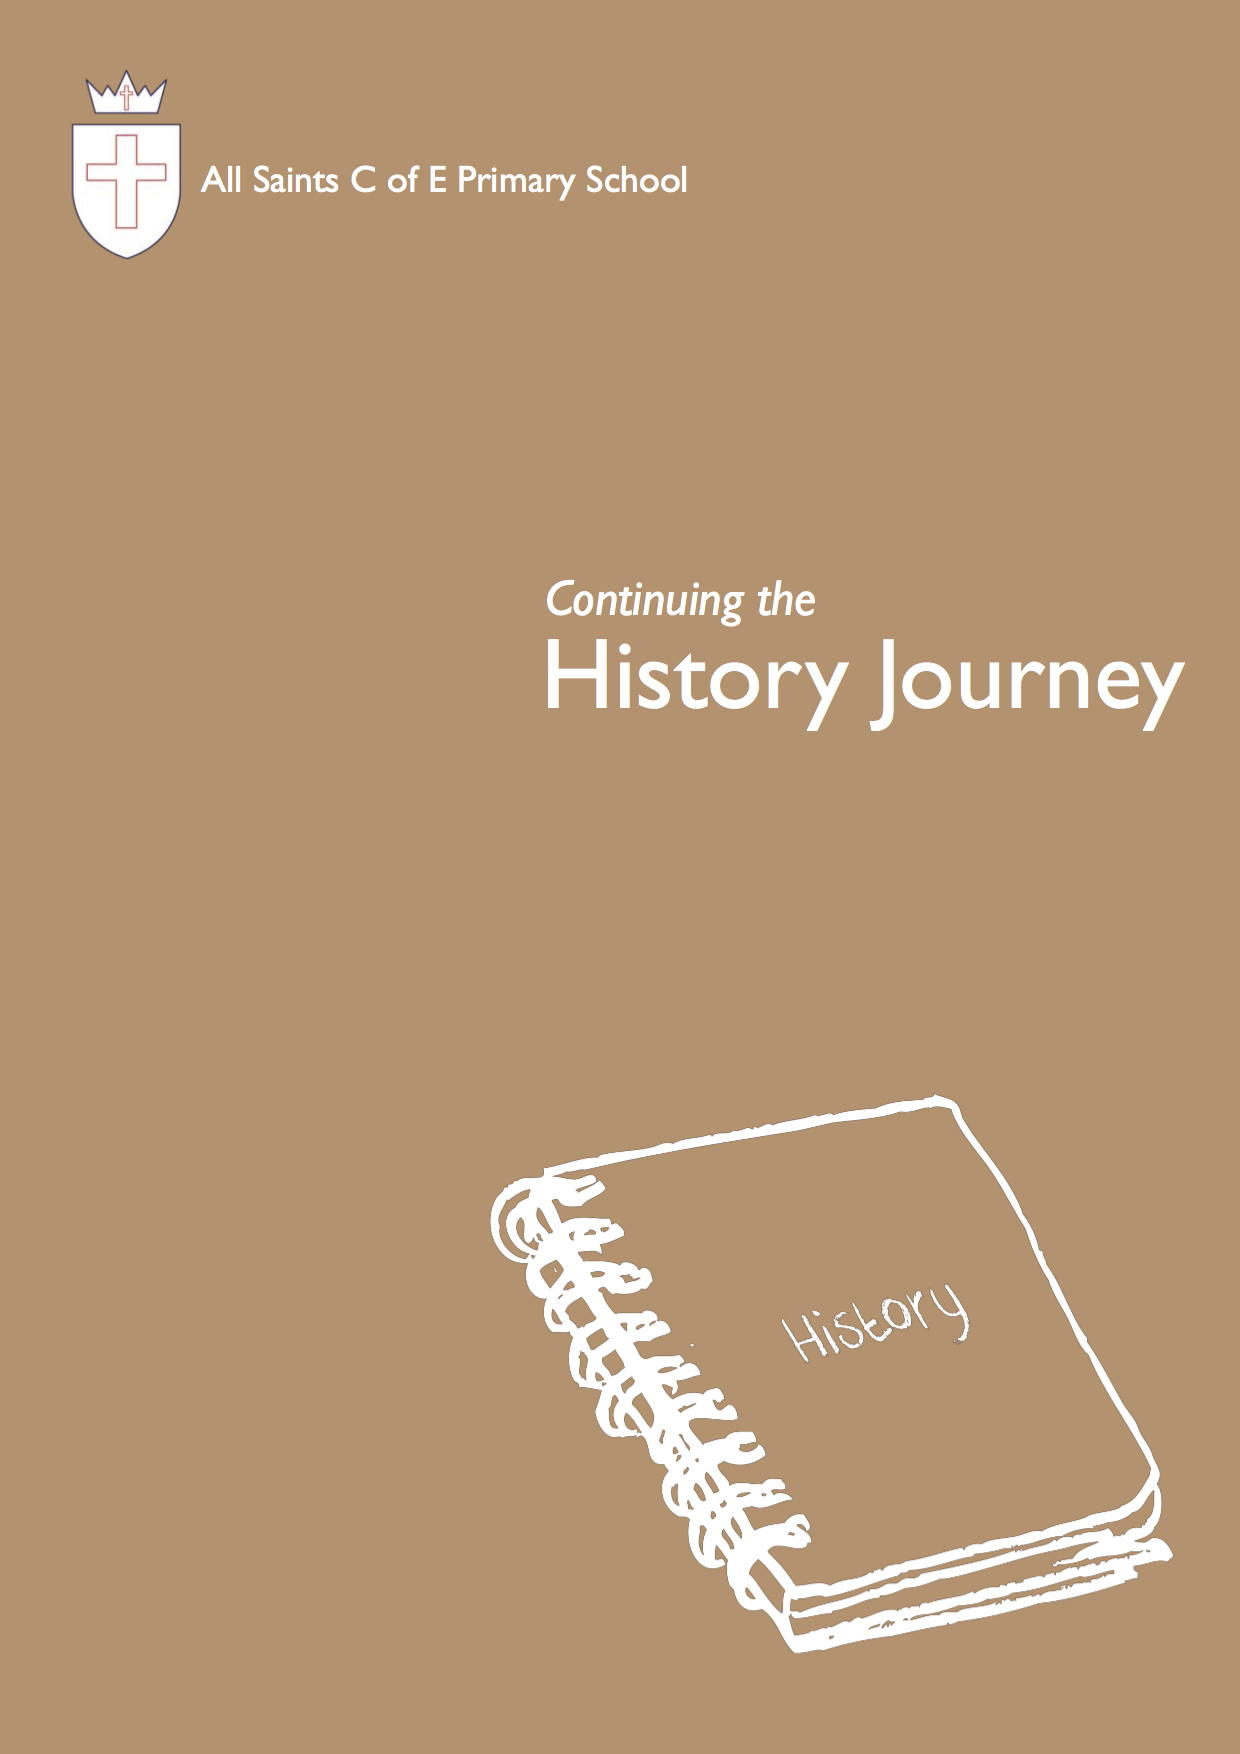 New_History_Booklet_-_Sep_2017.jpg